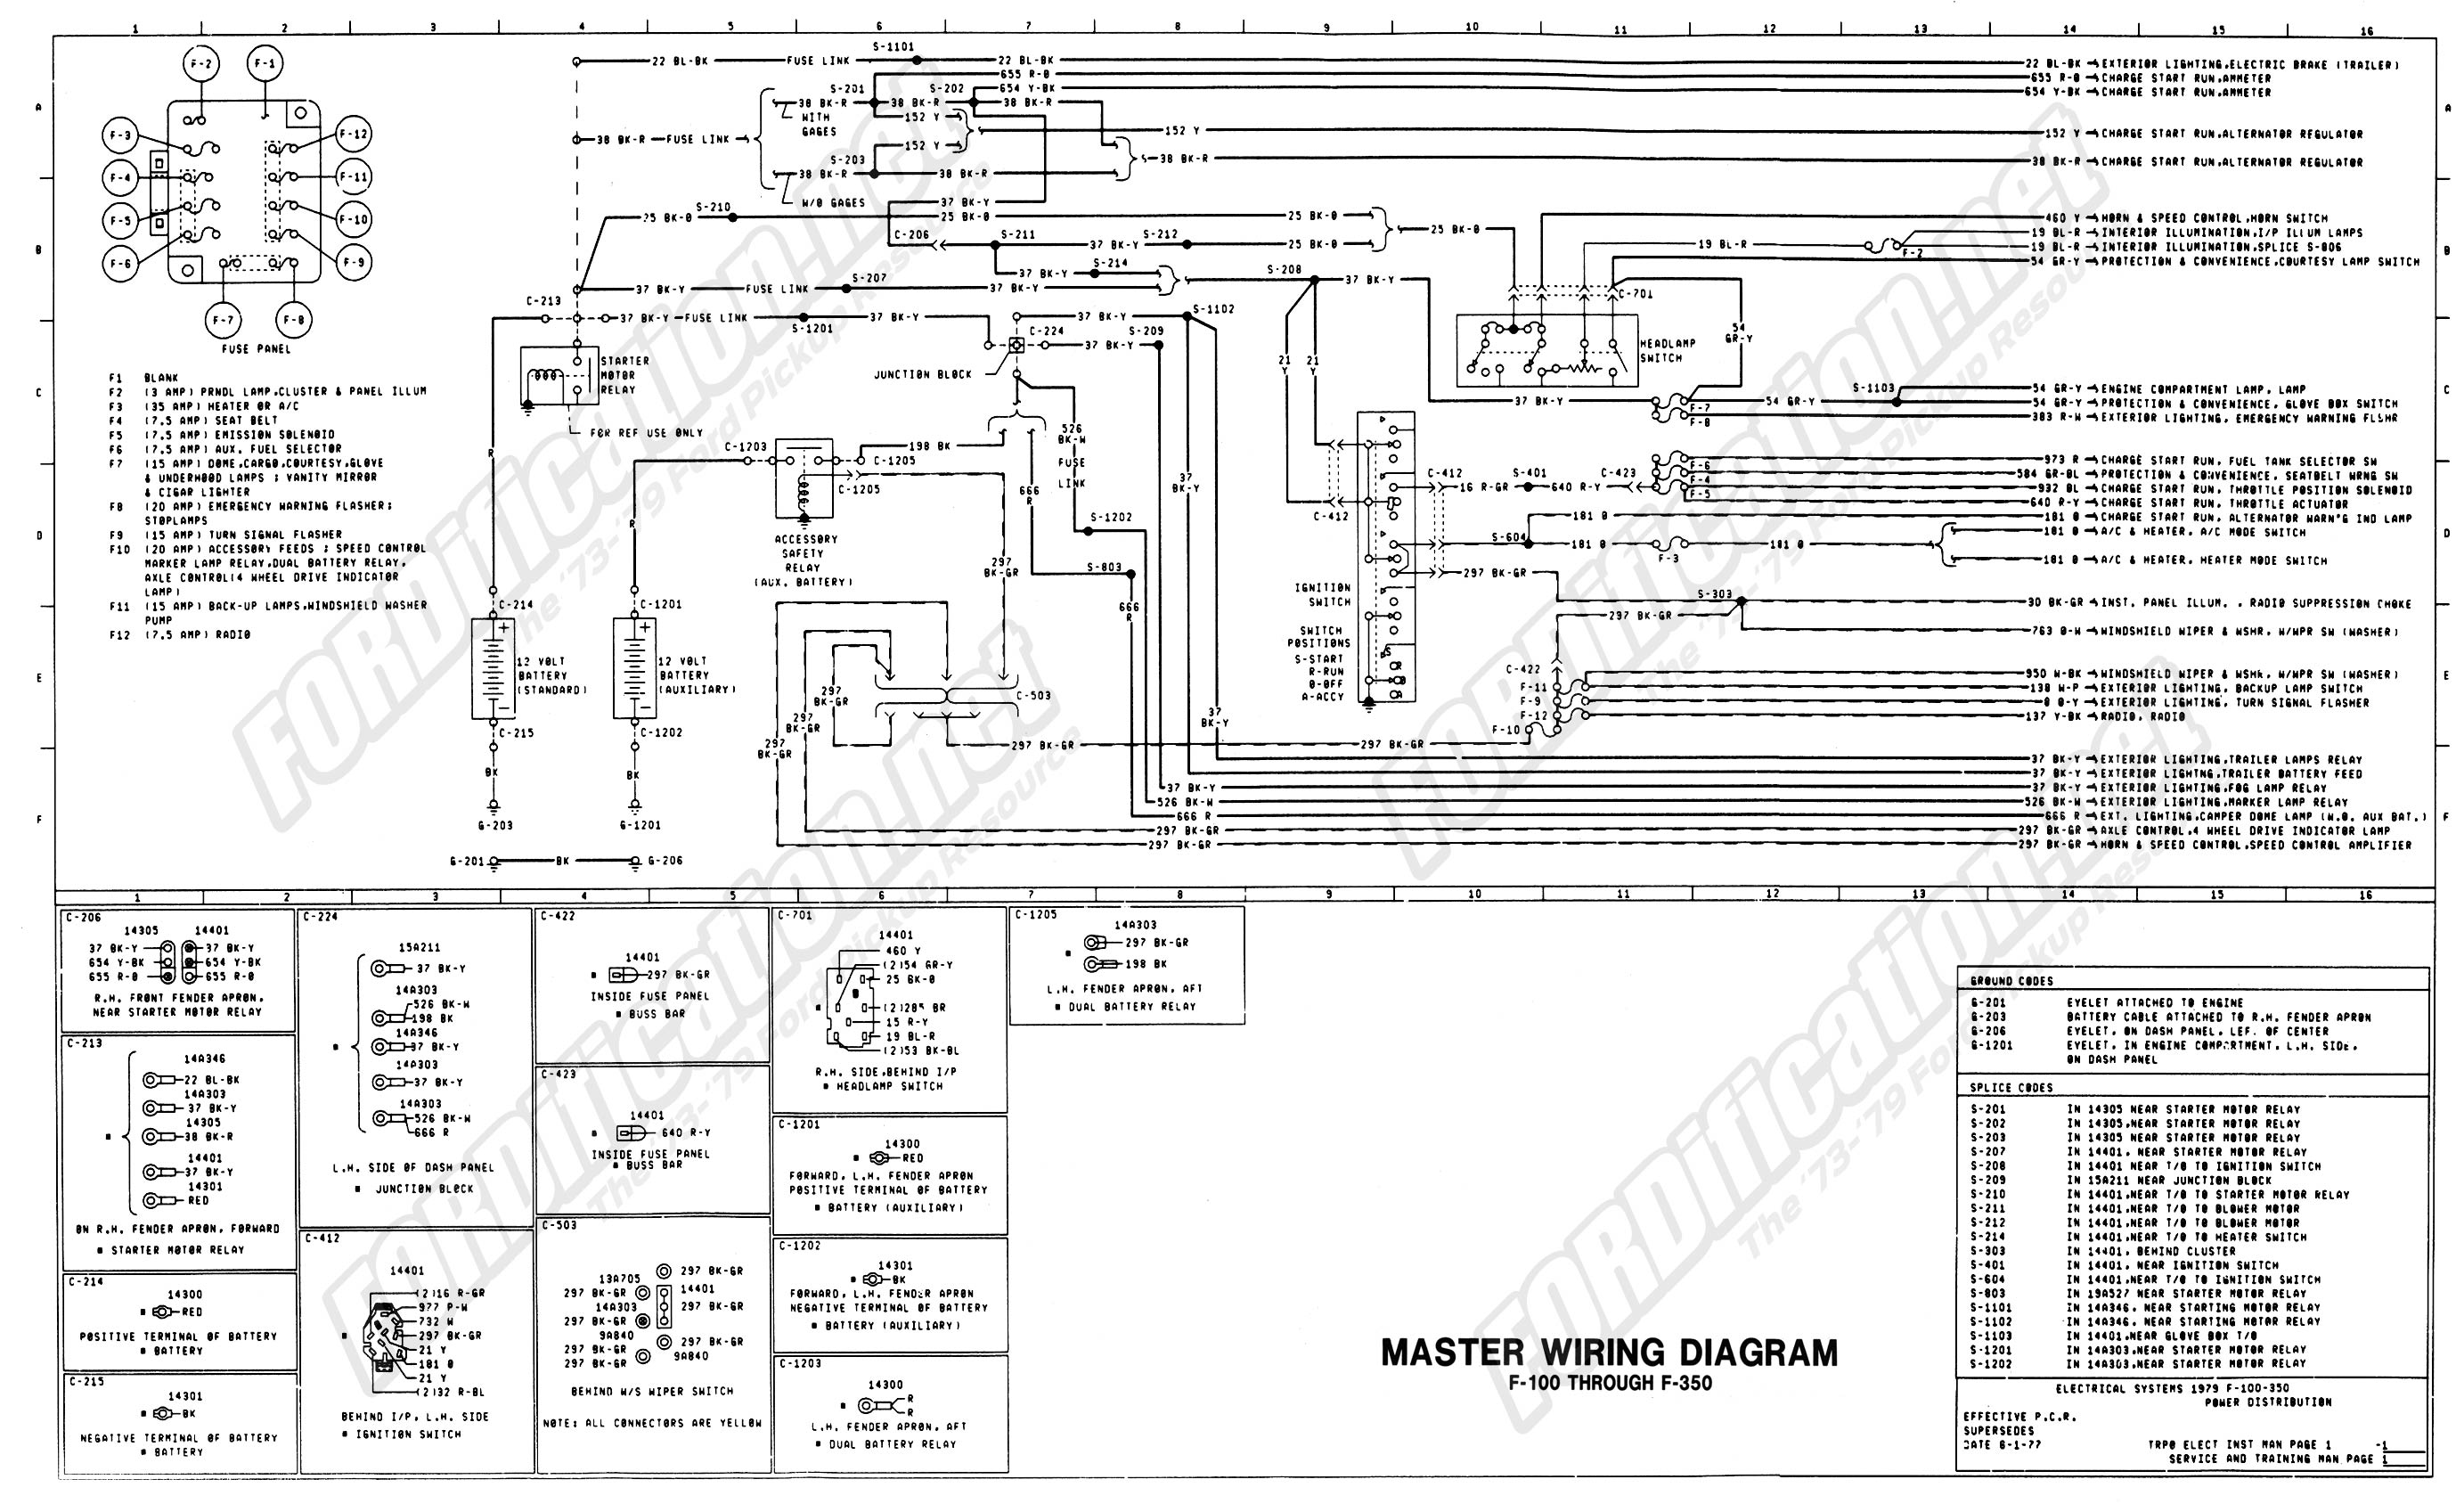 wiring_79master_1of9 wiring diagram for 1977 ford f150 readingrat net 1979 ford f150 radio wiring diagram at gsmportal.co